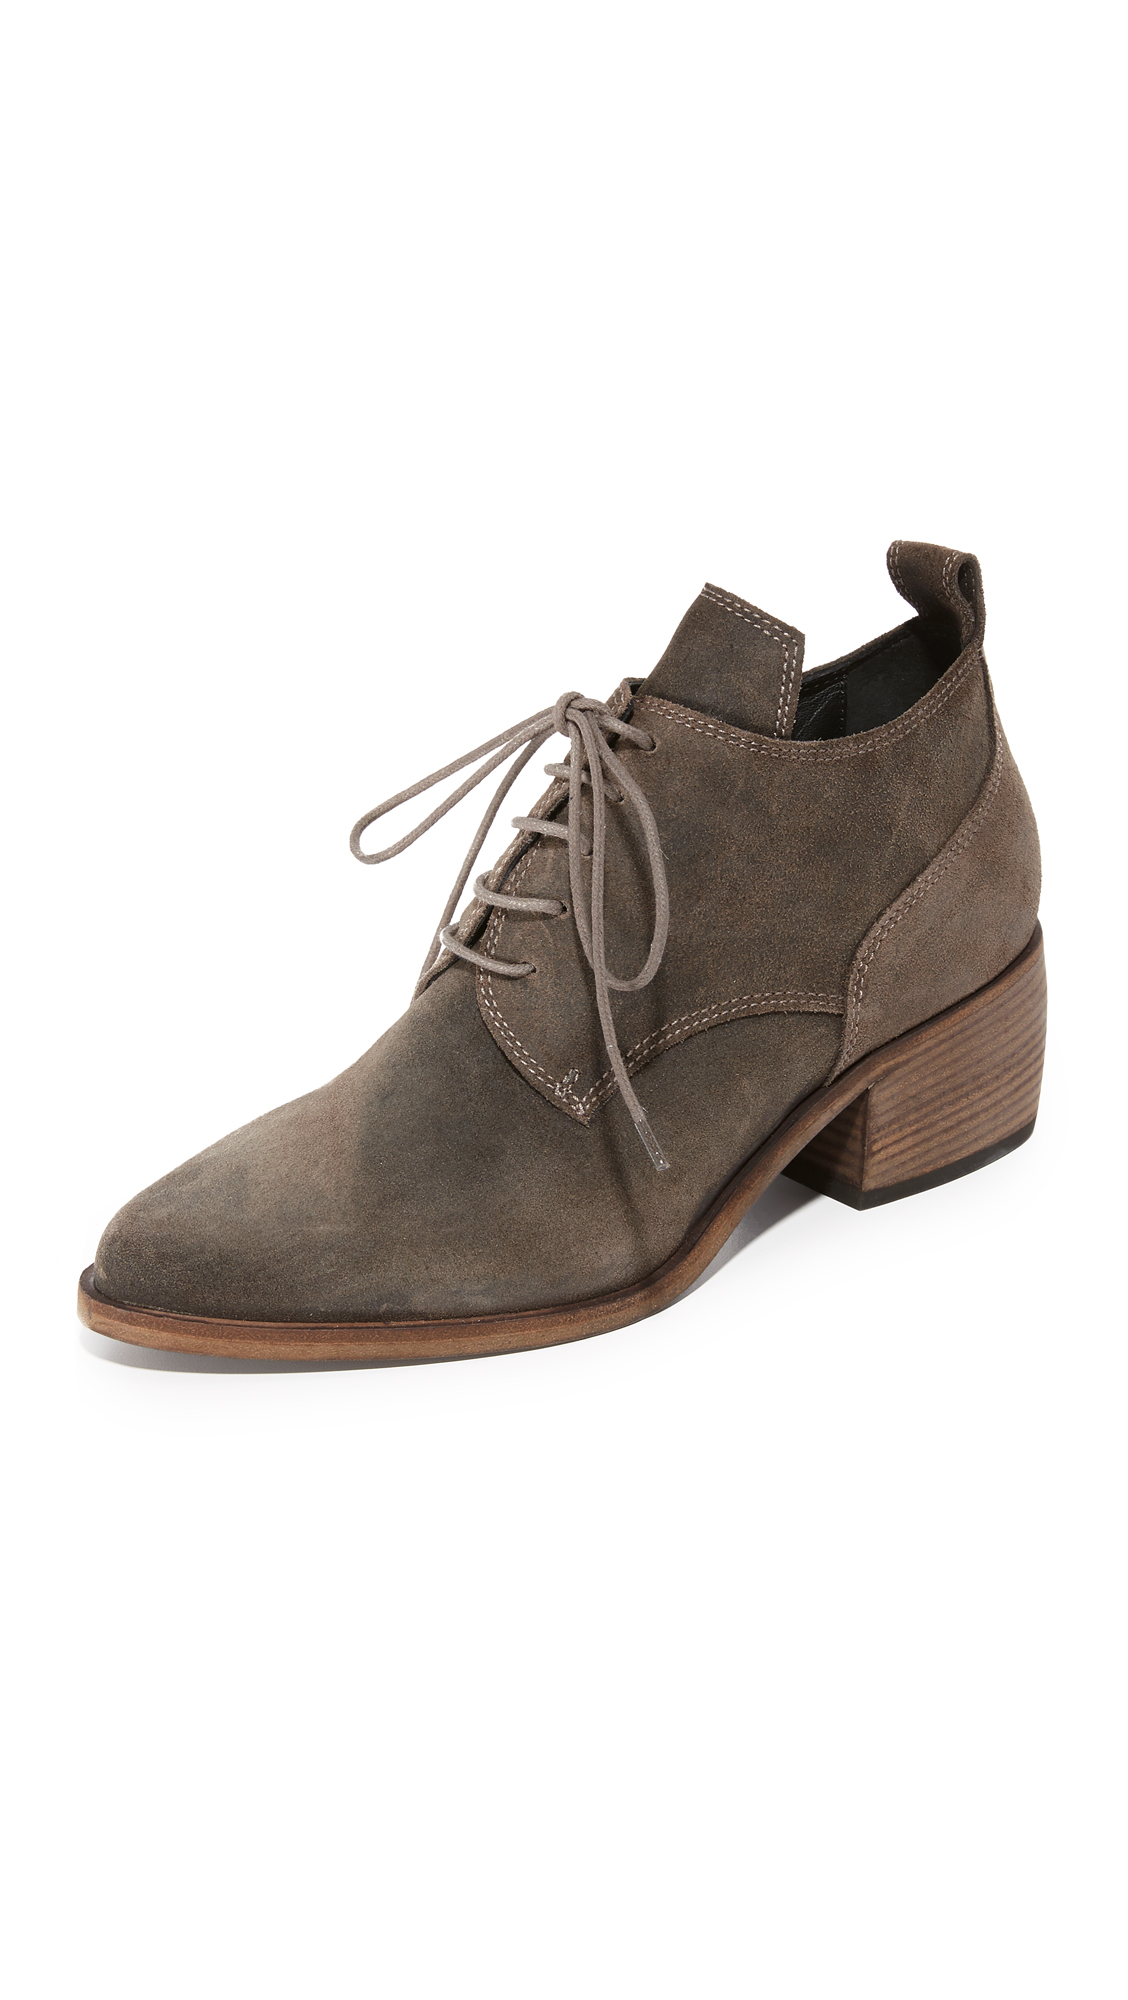 Ld Tuttle The Path Oxford Booties - Grease